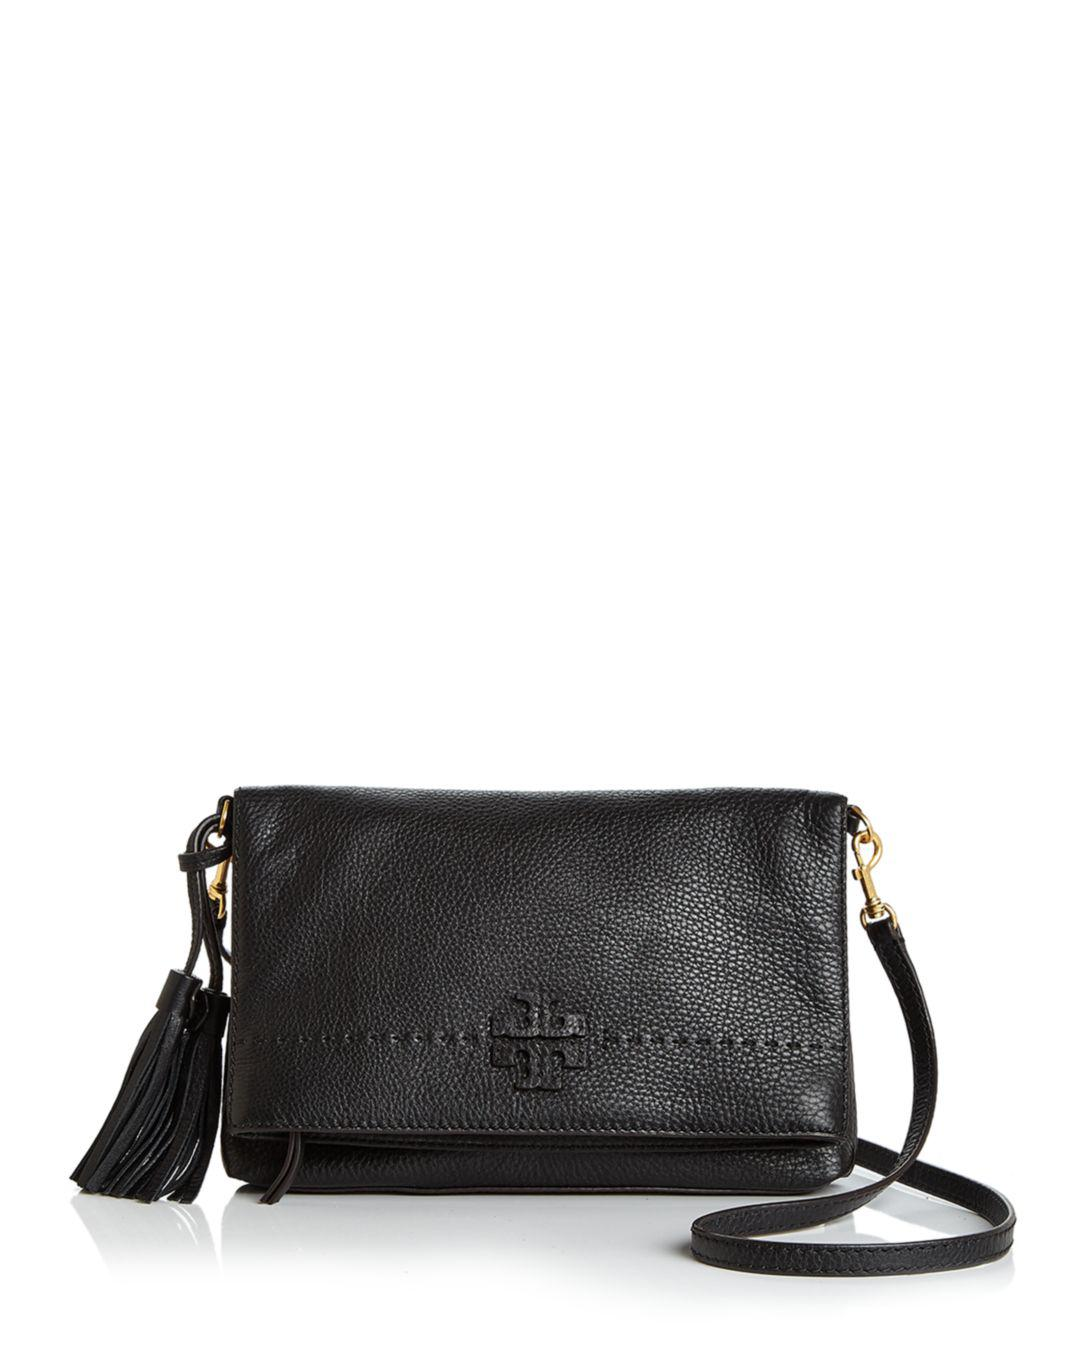 6e2b8d717876 Lyst - Tory Burch Mcgraw Fold-over Leather Crossbody in Black - Save 25%